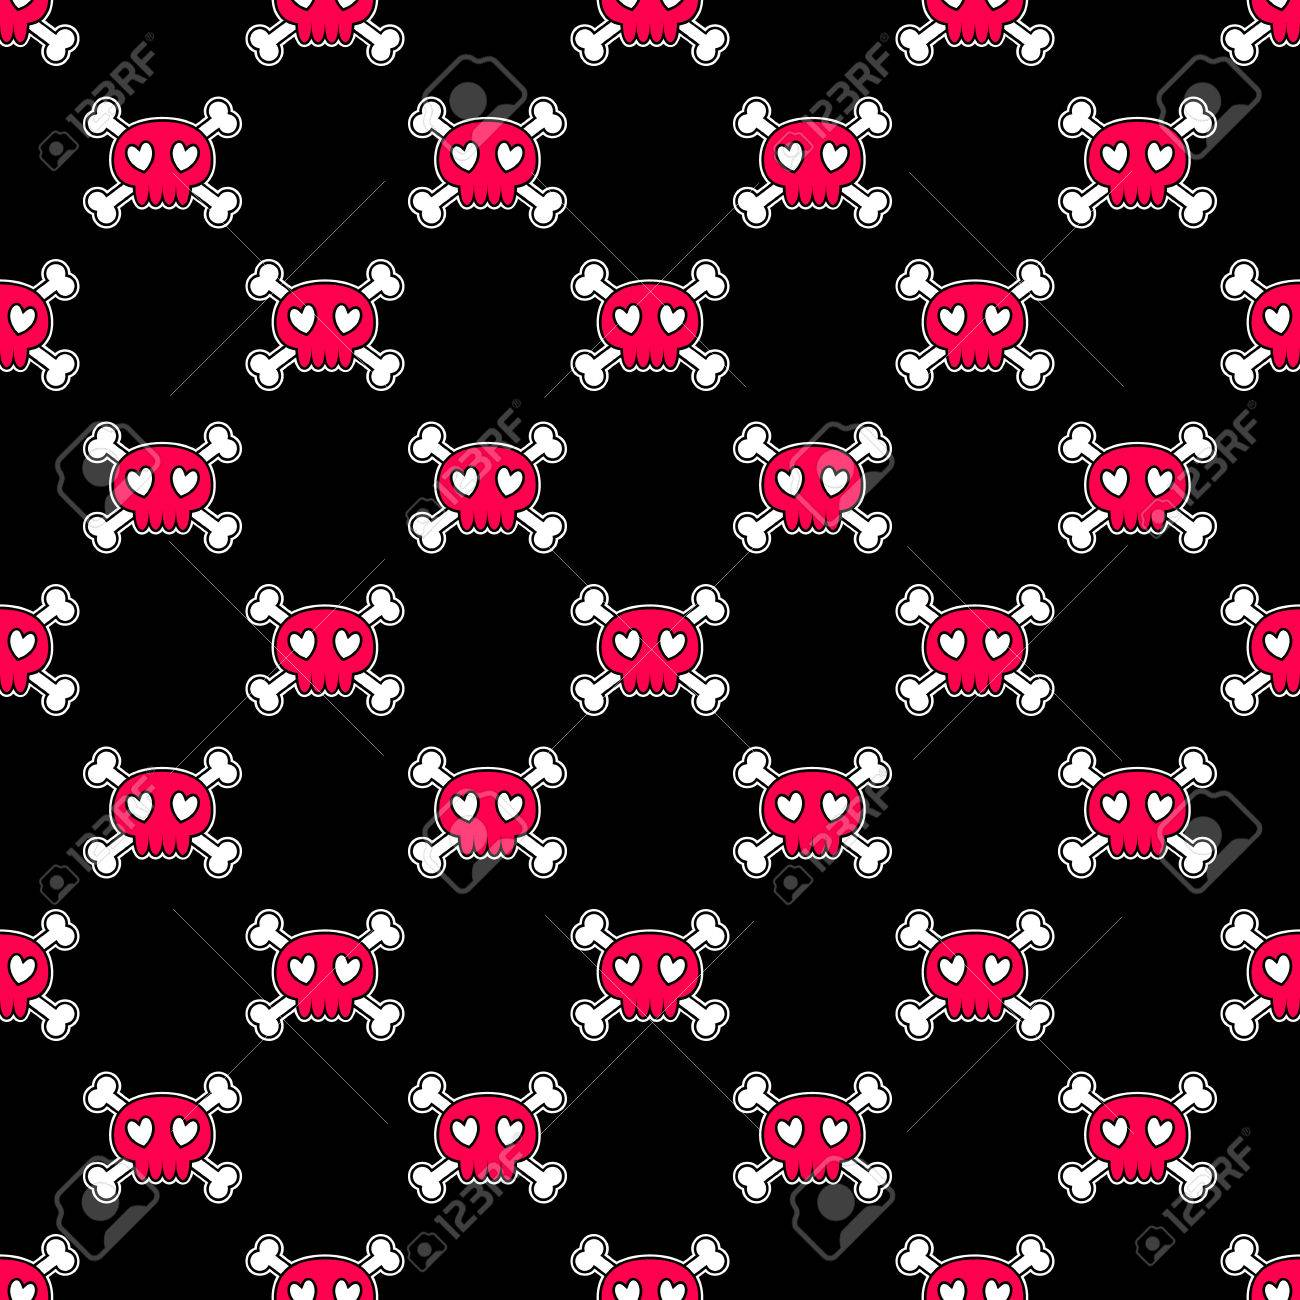 Seamless Halloween Pattern Wallpaper With Pink Skulls On Black